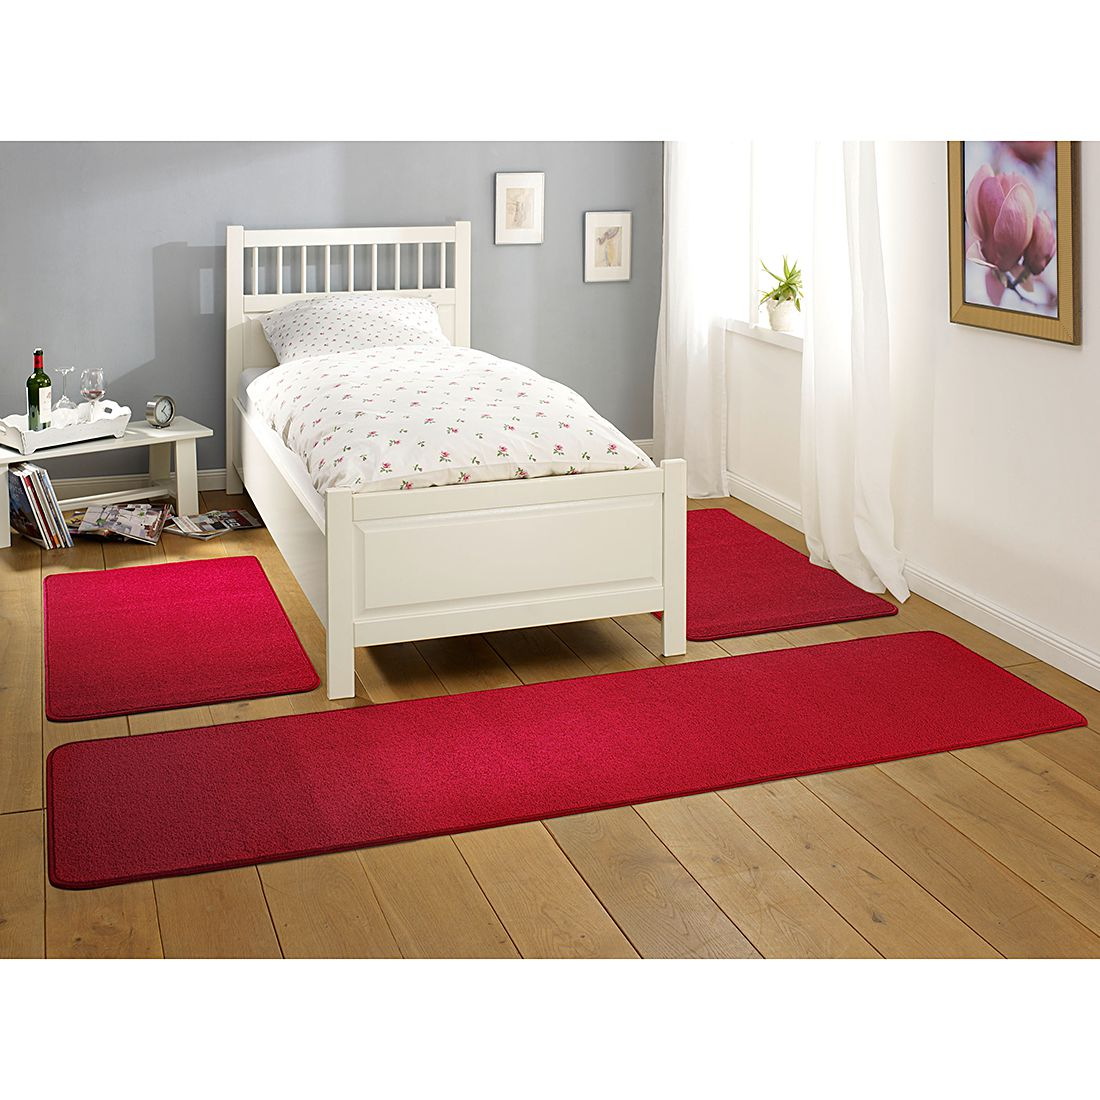 Tapis de lit Nasty - Rouge, Hanse Home Collection